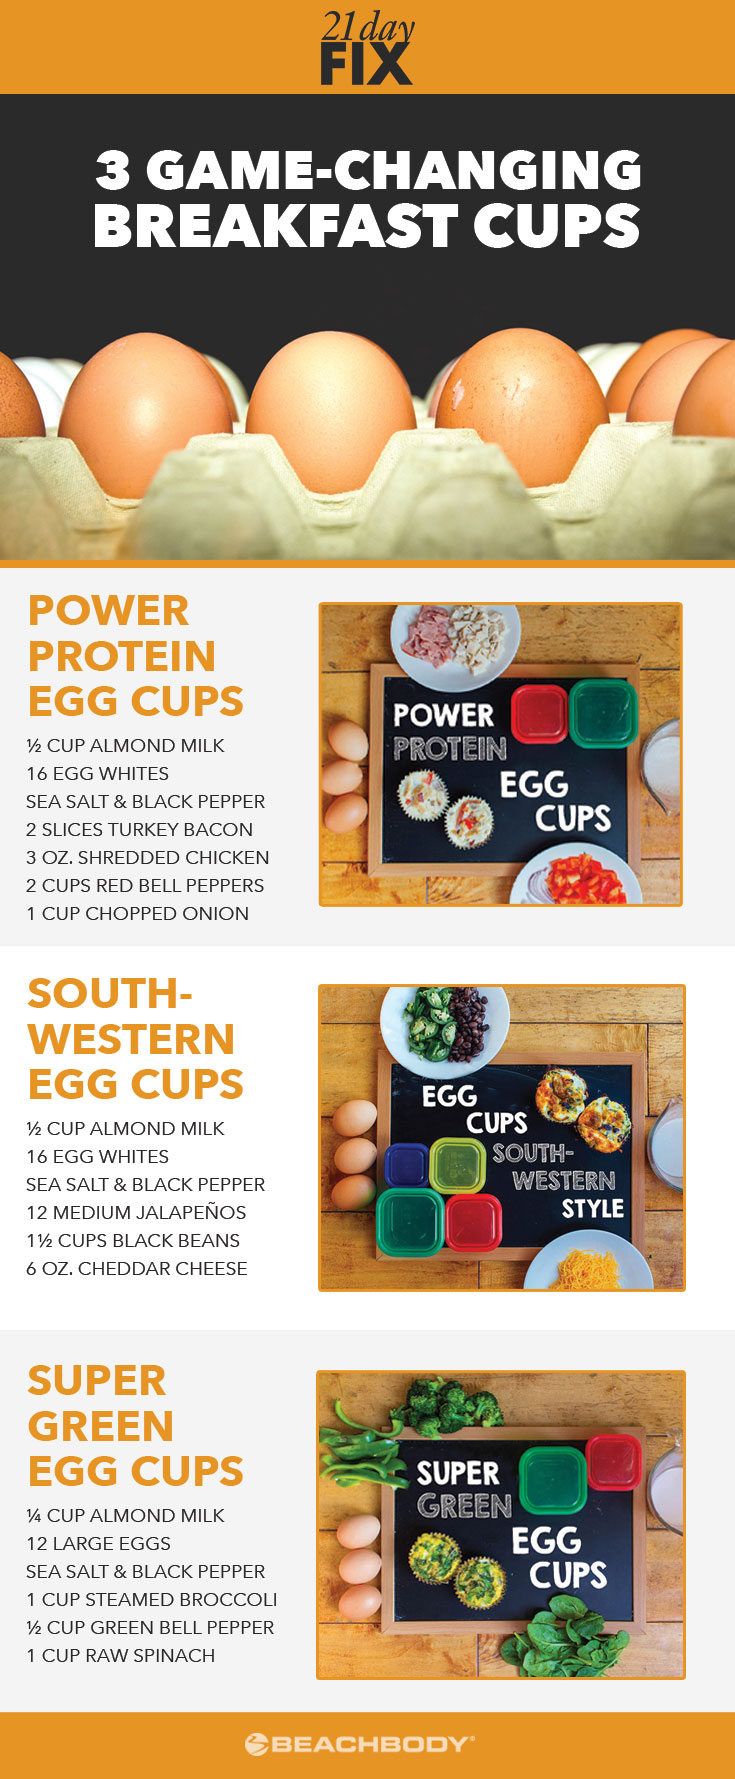 Mornings can be hectic. Whip up any of these easy breakfast (or lunch!) egg muffin recipes for 21-Day Fix-approved nutrition on-the-go!